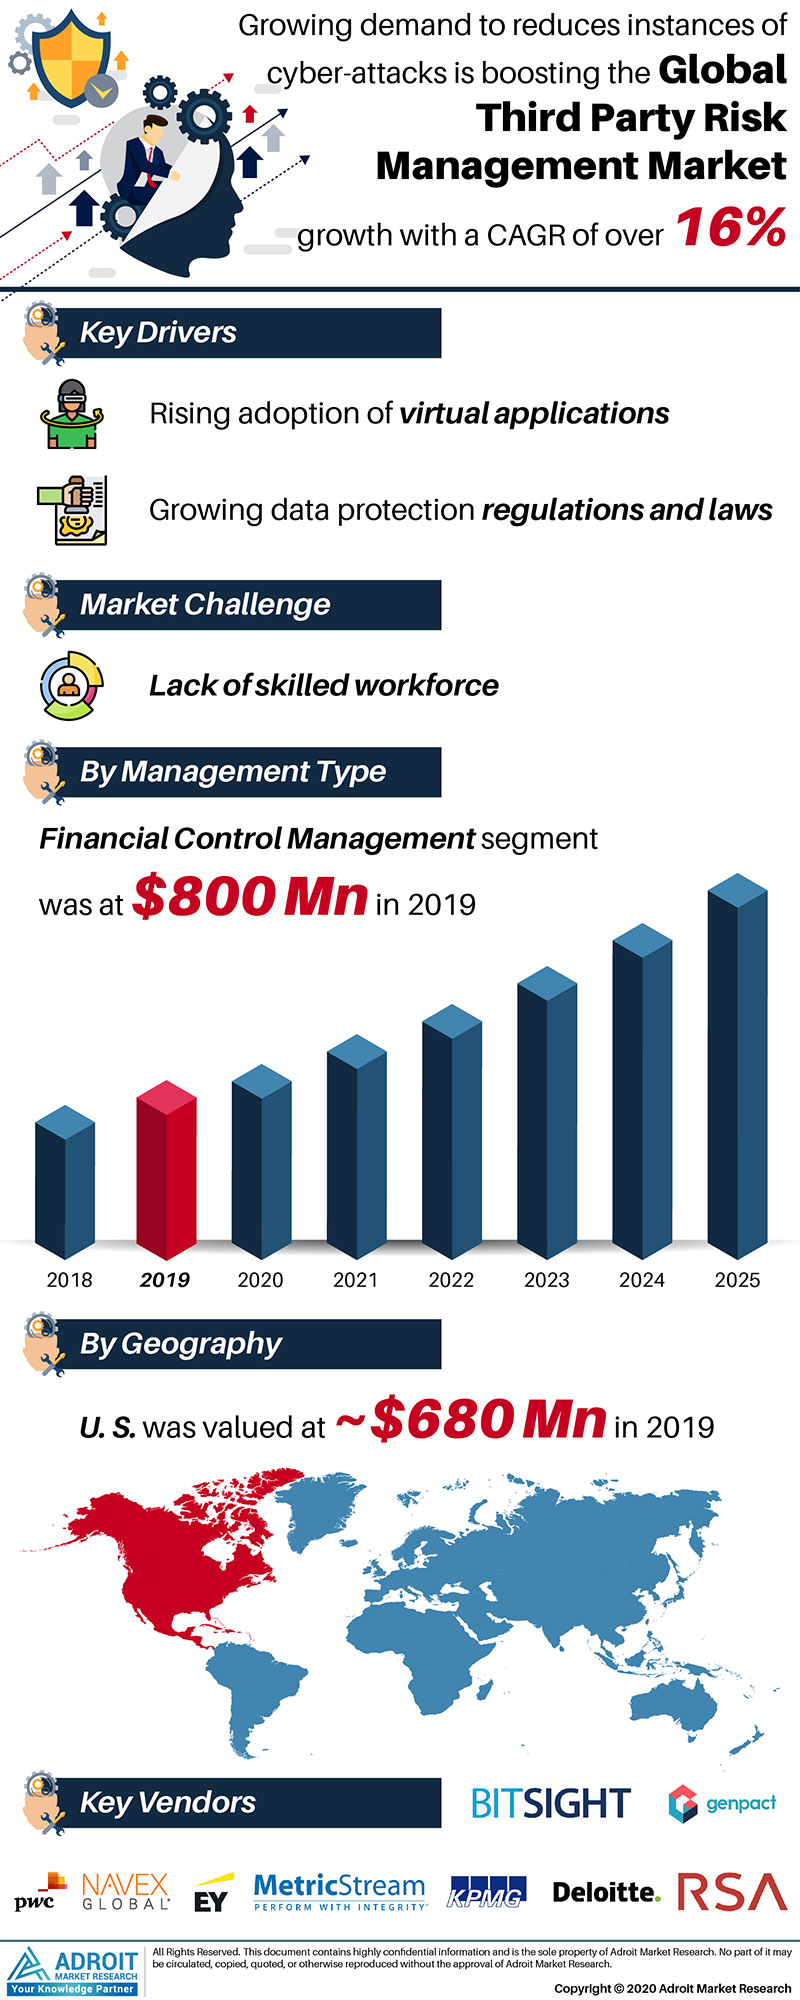 Third Party Risk Management Market Size 2017 By Application, Product, Region and Forecast 2019 to 2025